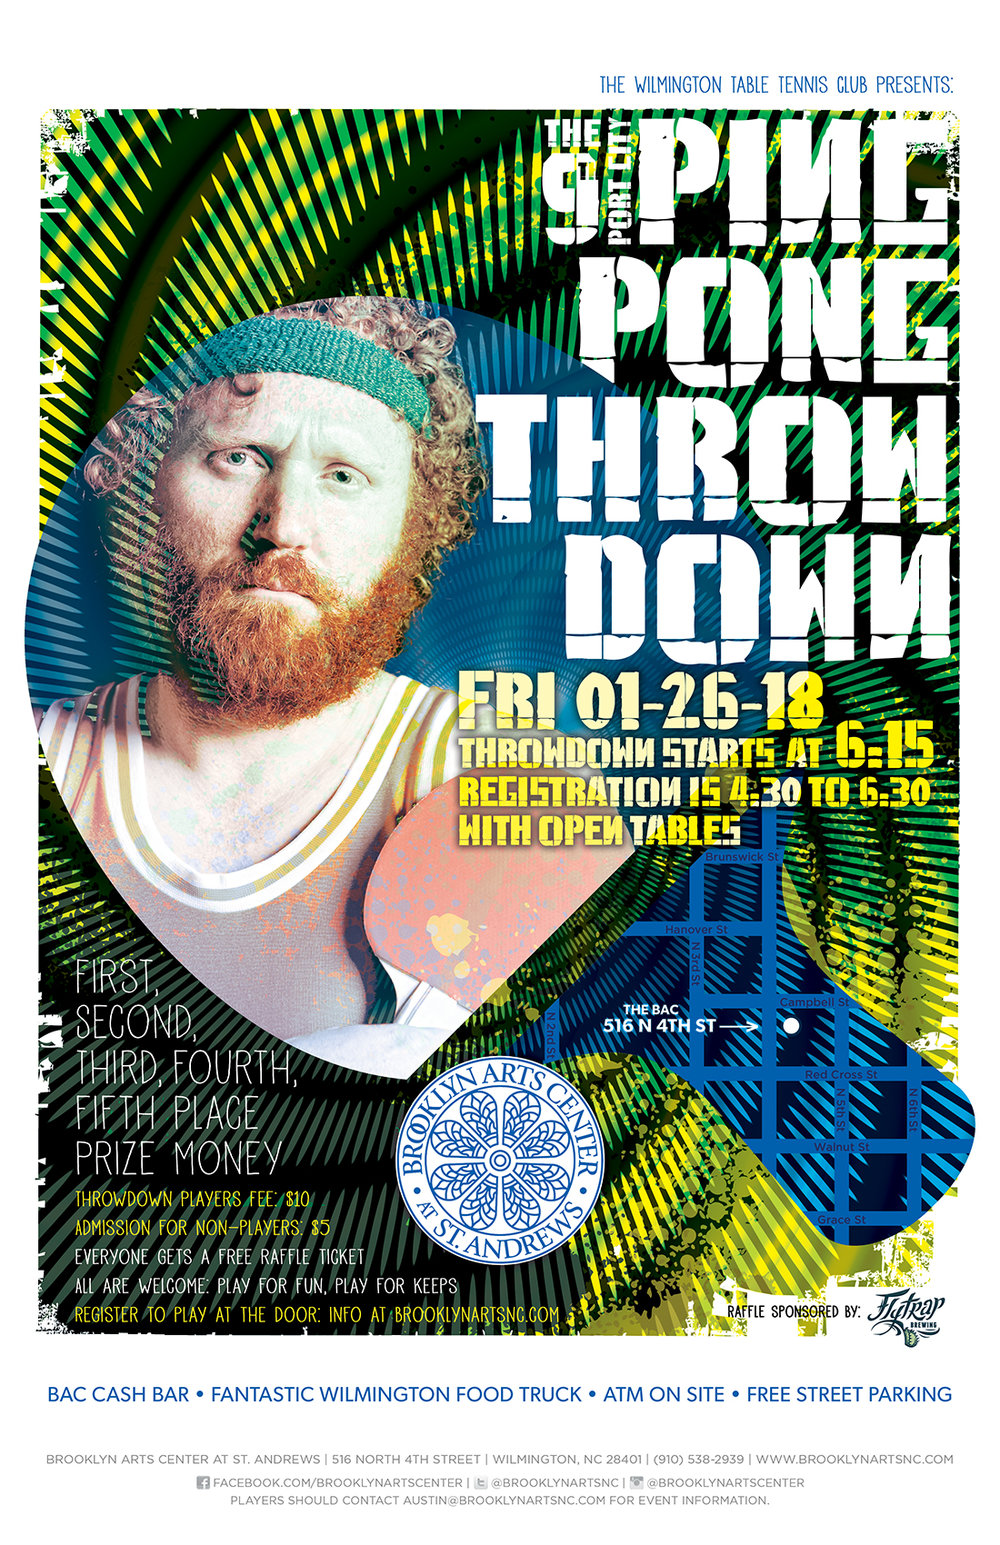 BAC_1998-ping pong throwdown 9.jpg